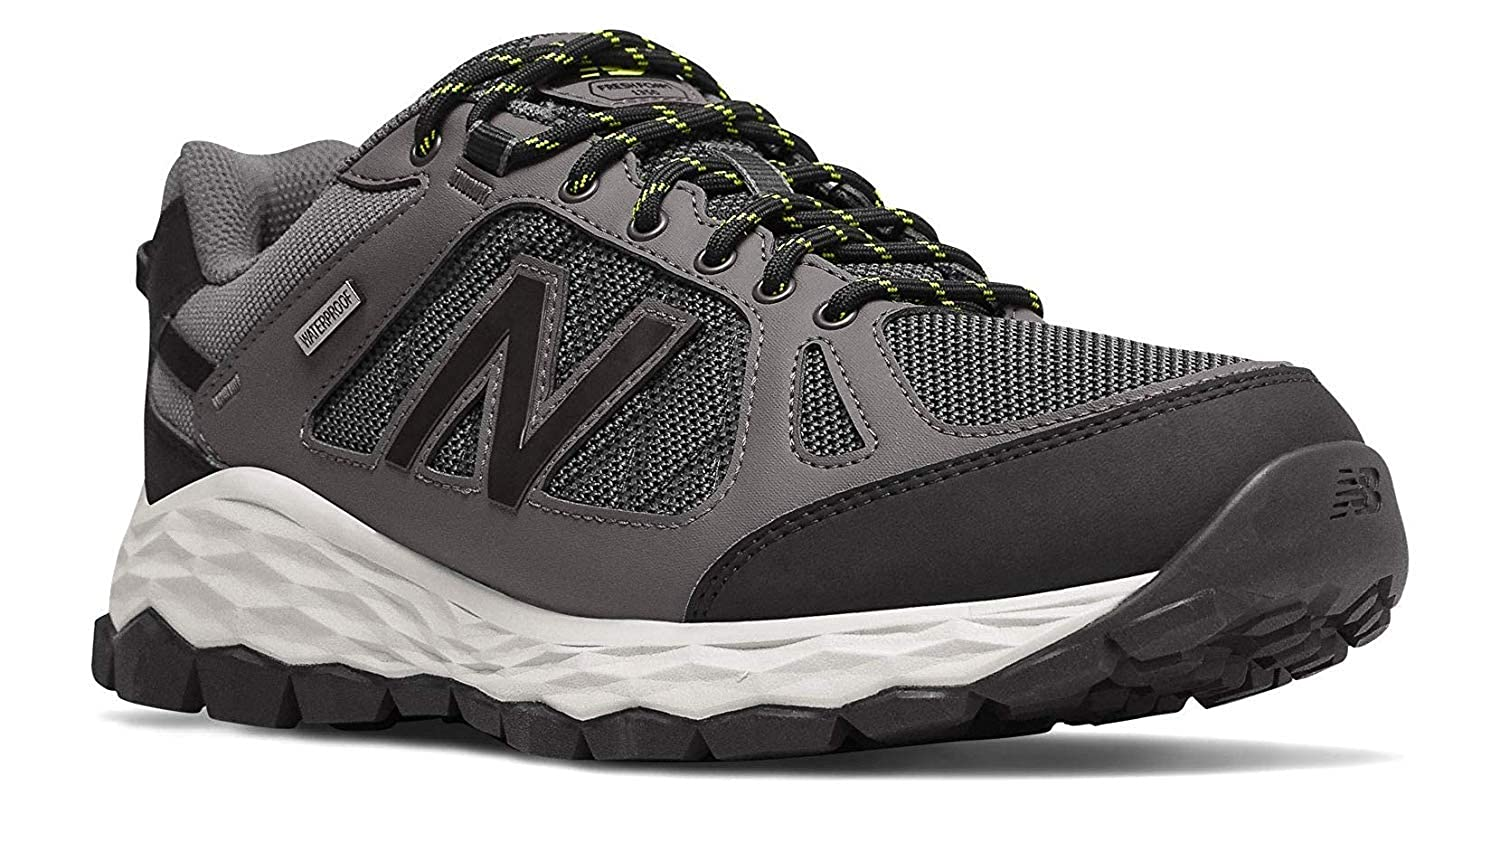 2new balance waterproof